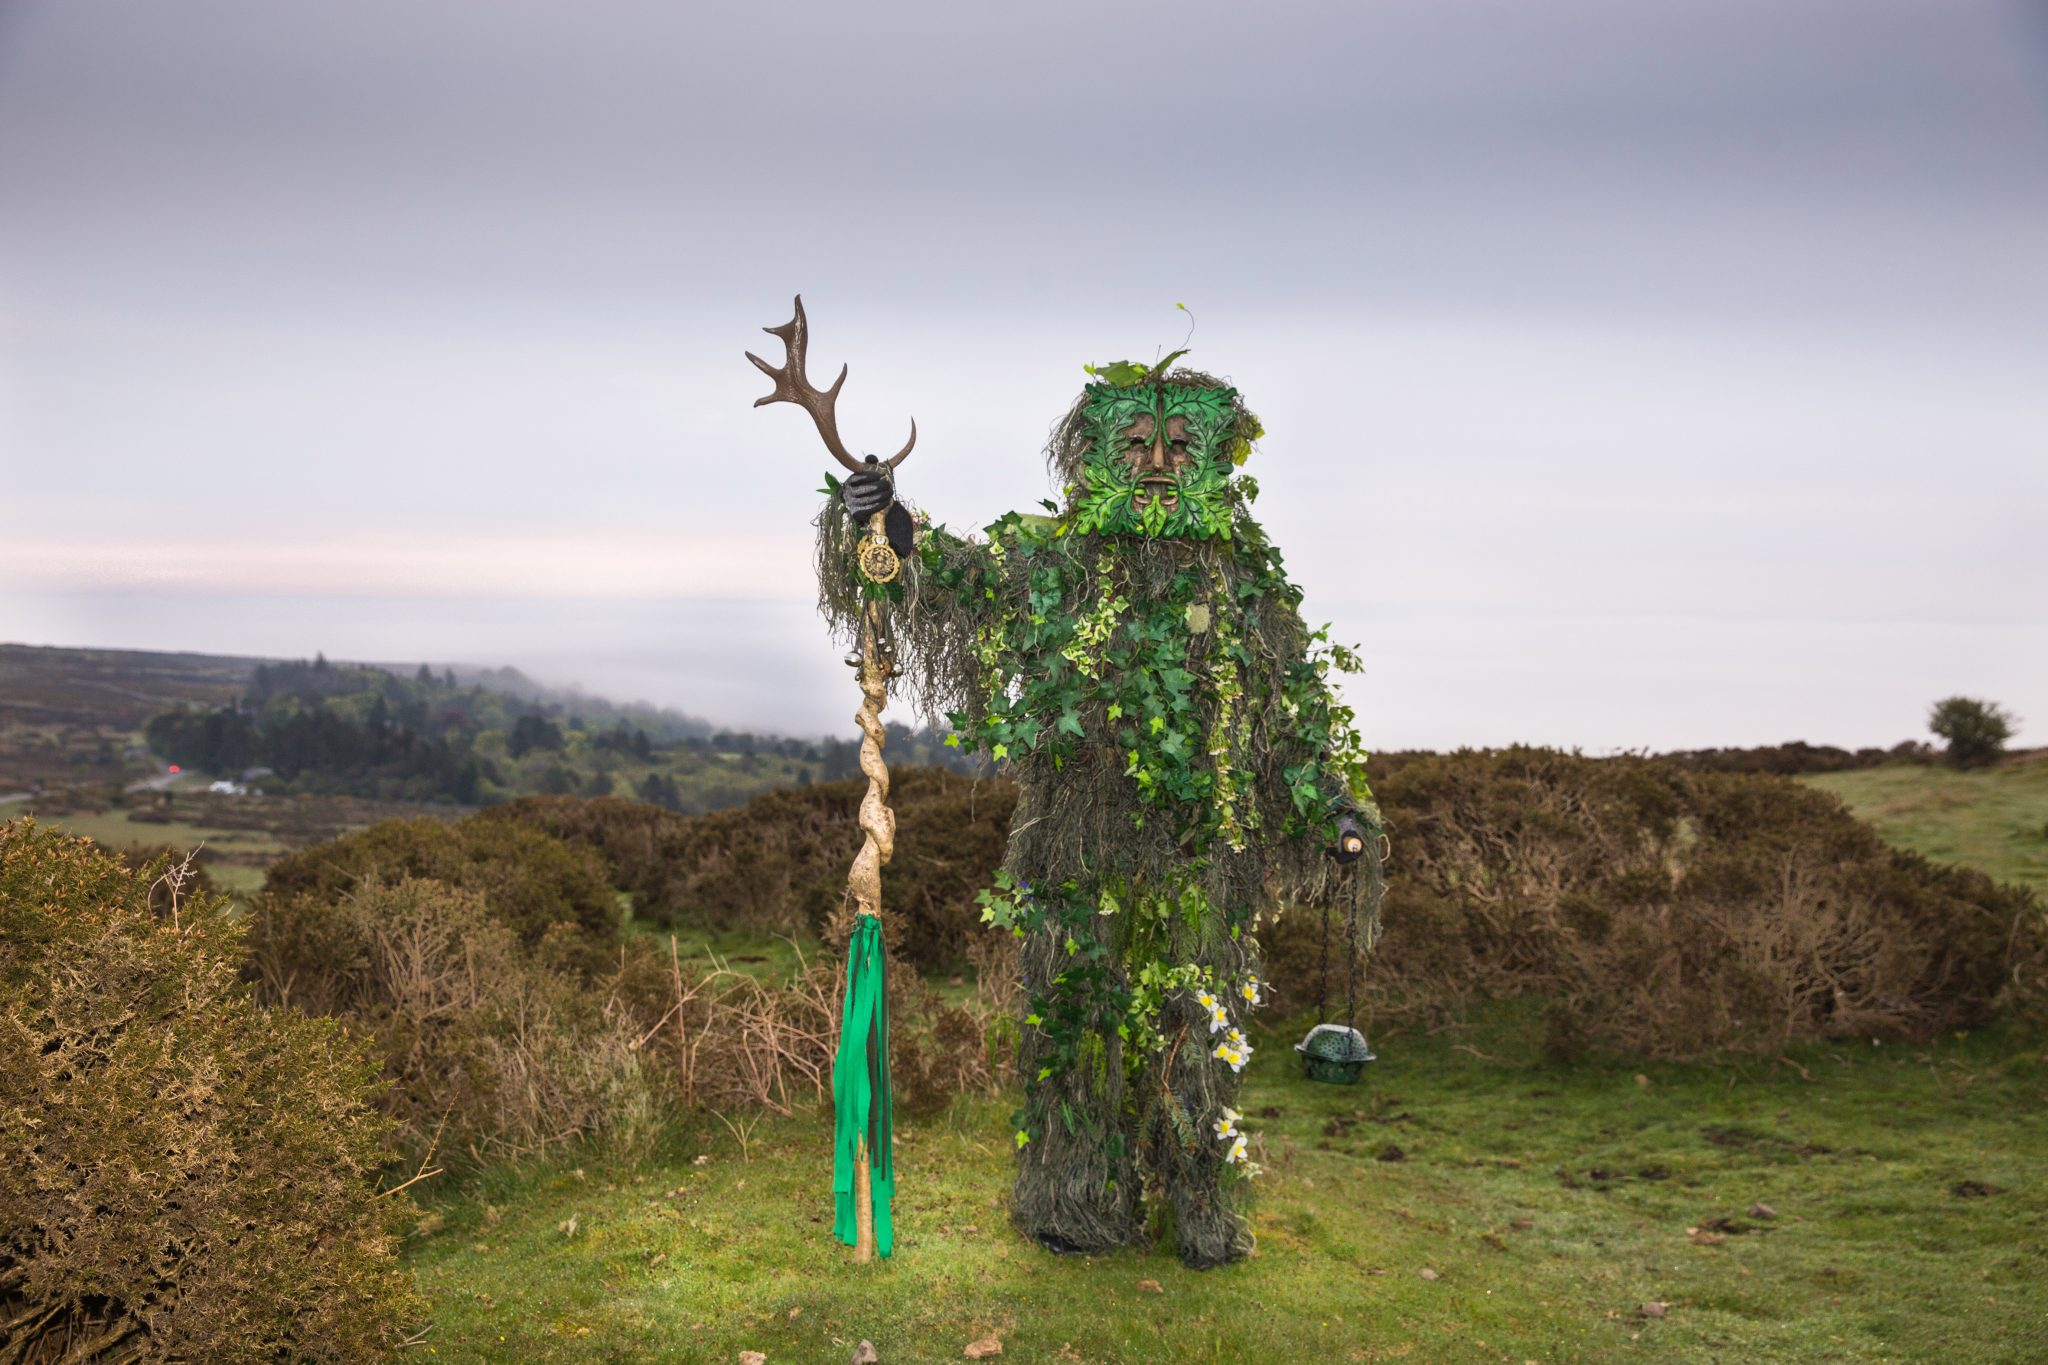 The Green Man at HayTor, on top of Dartmoor, Devon at dawn on May 1st. A symbol of rebirth, representing the cycle of growth each spring.